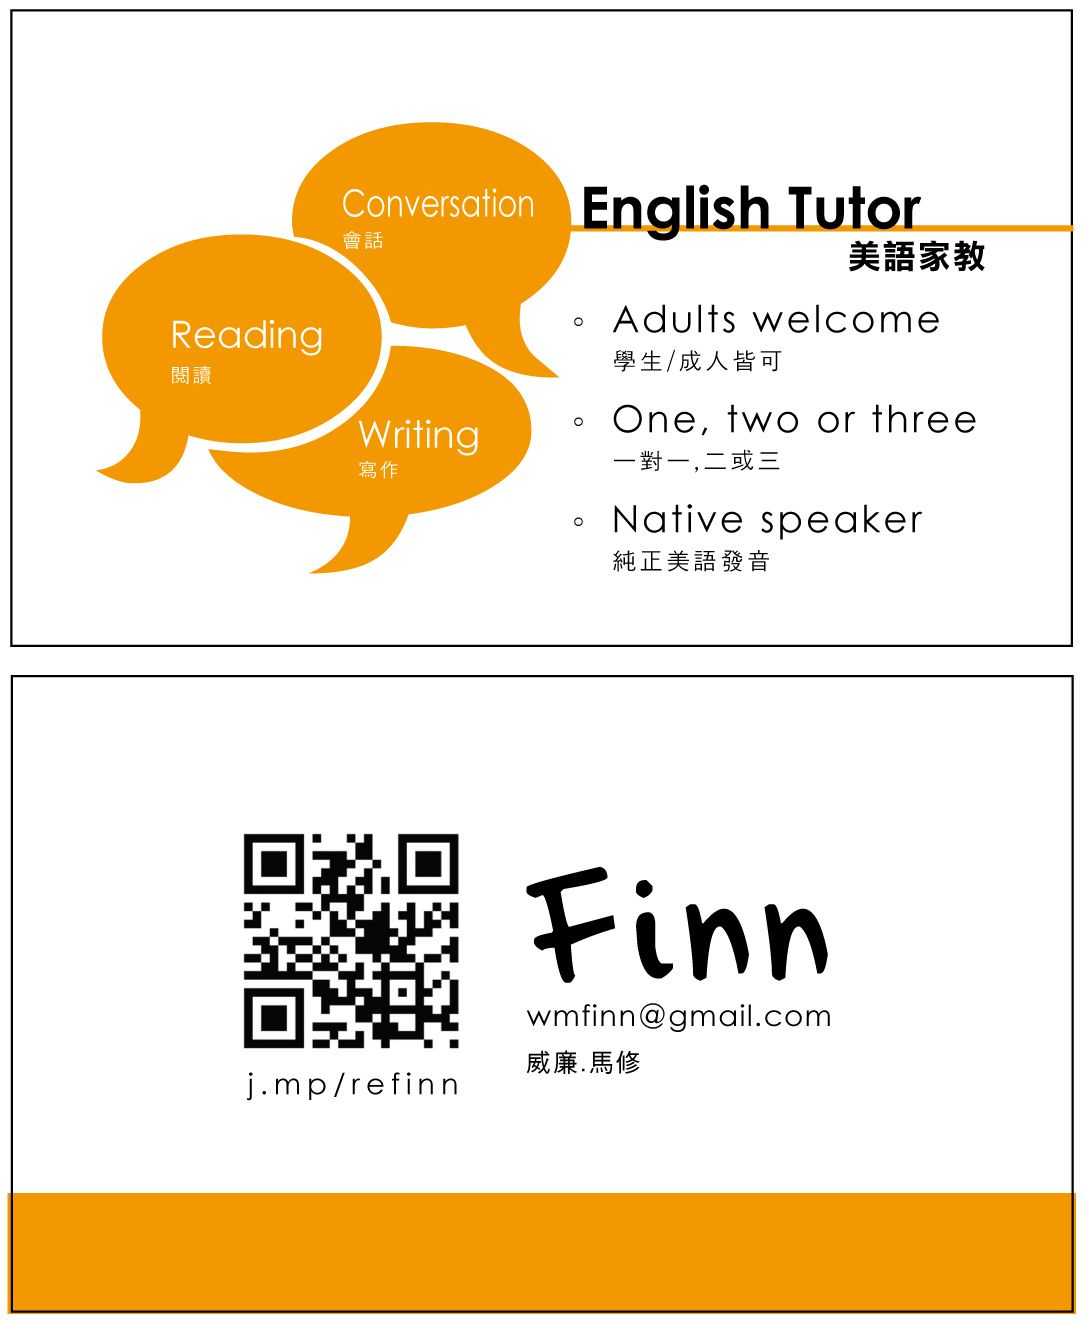 business cards for teachers 48 psd format my english tutoring business card